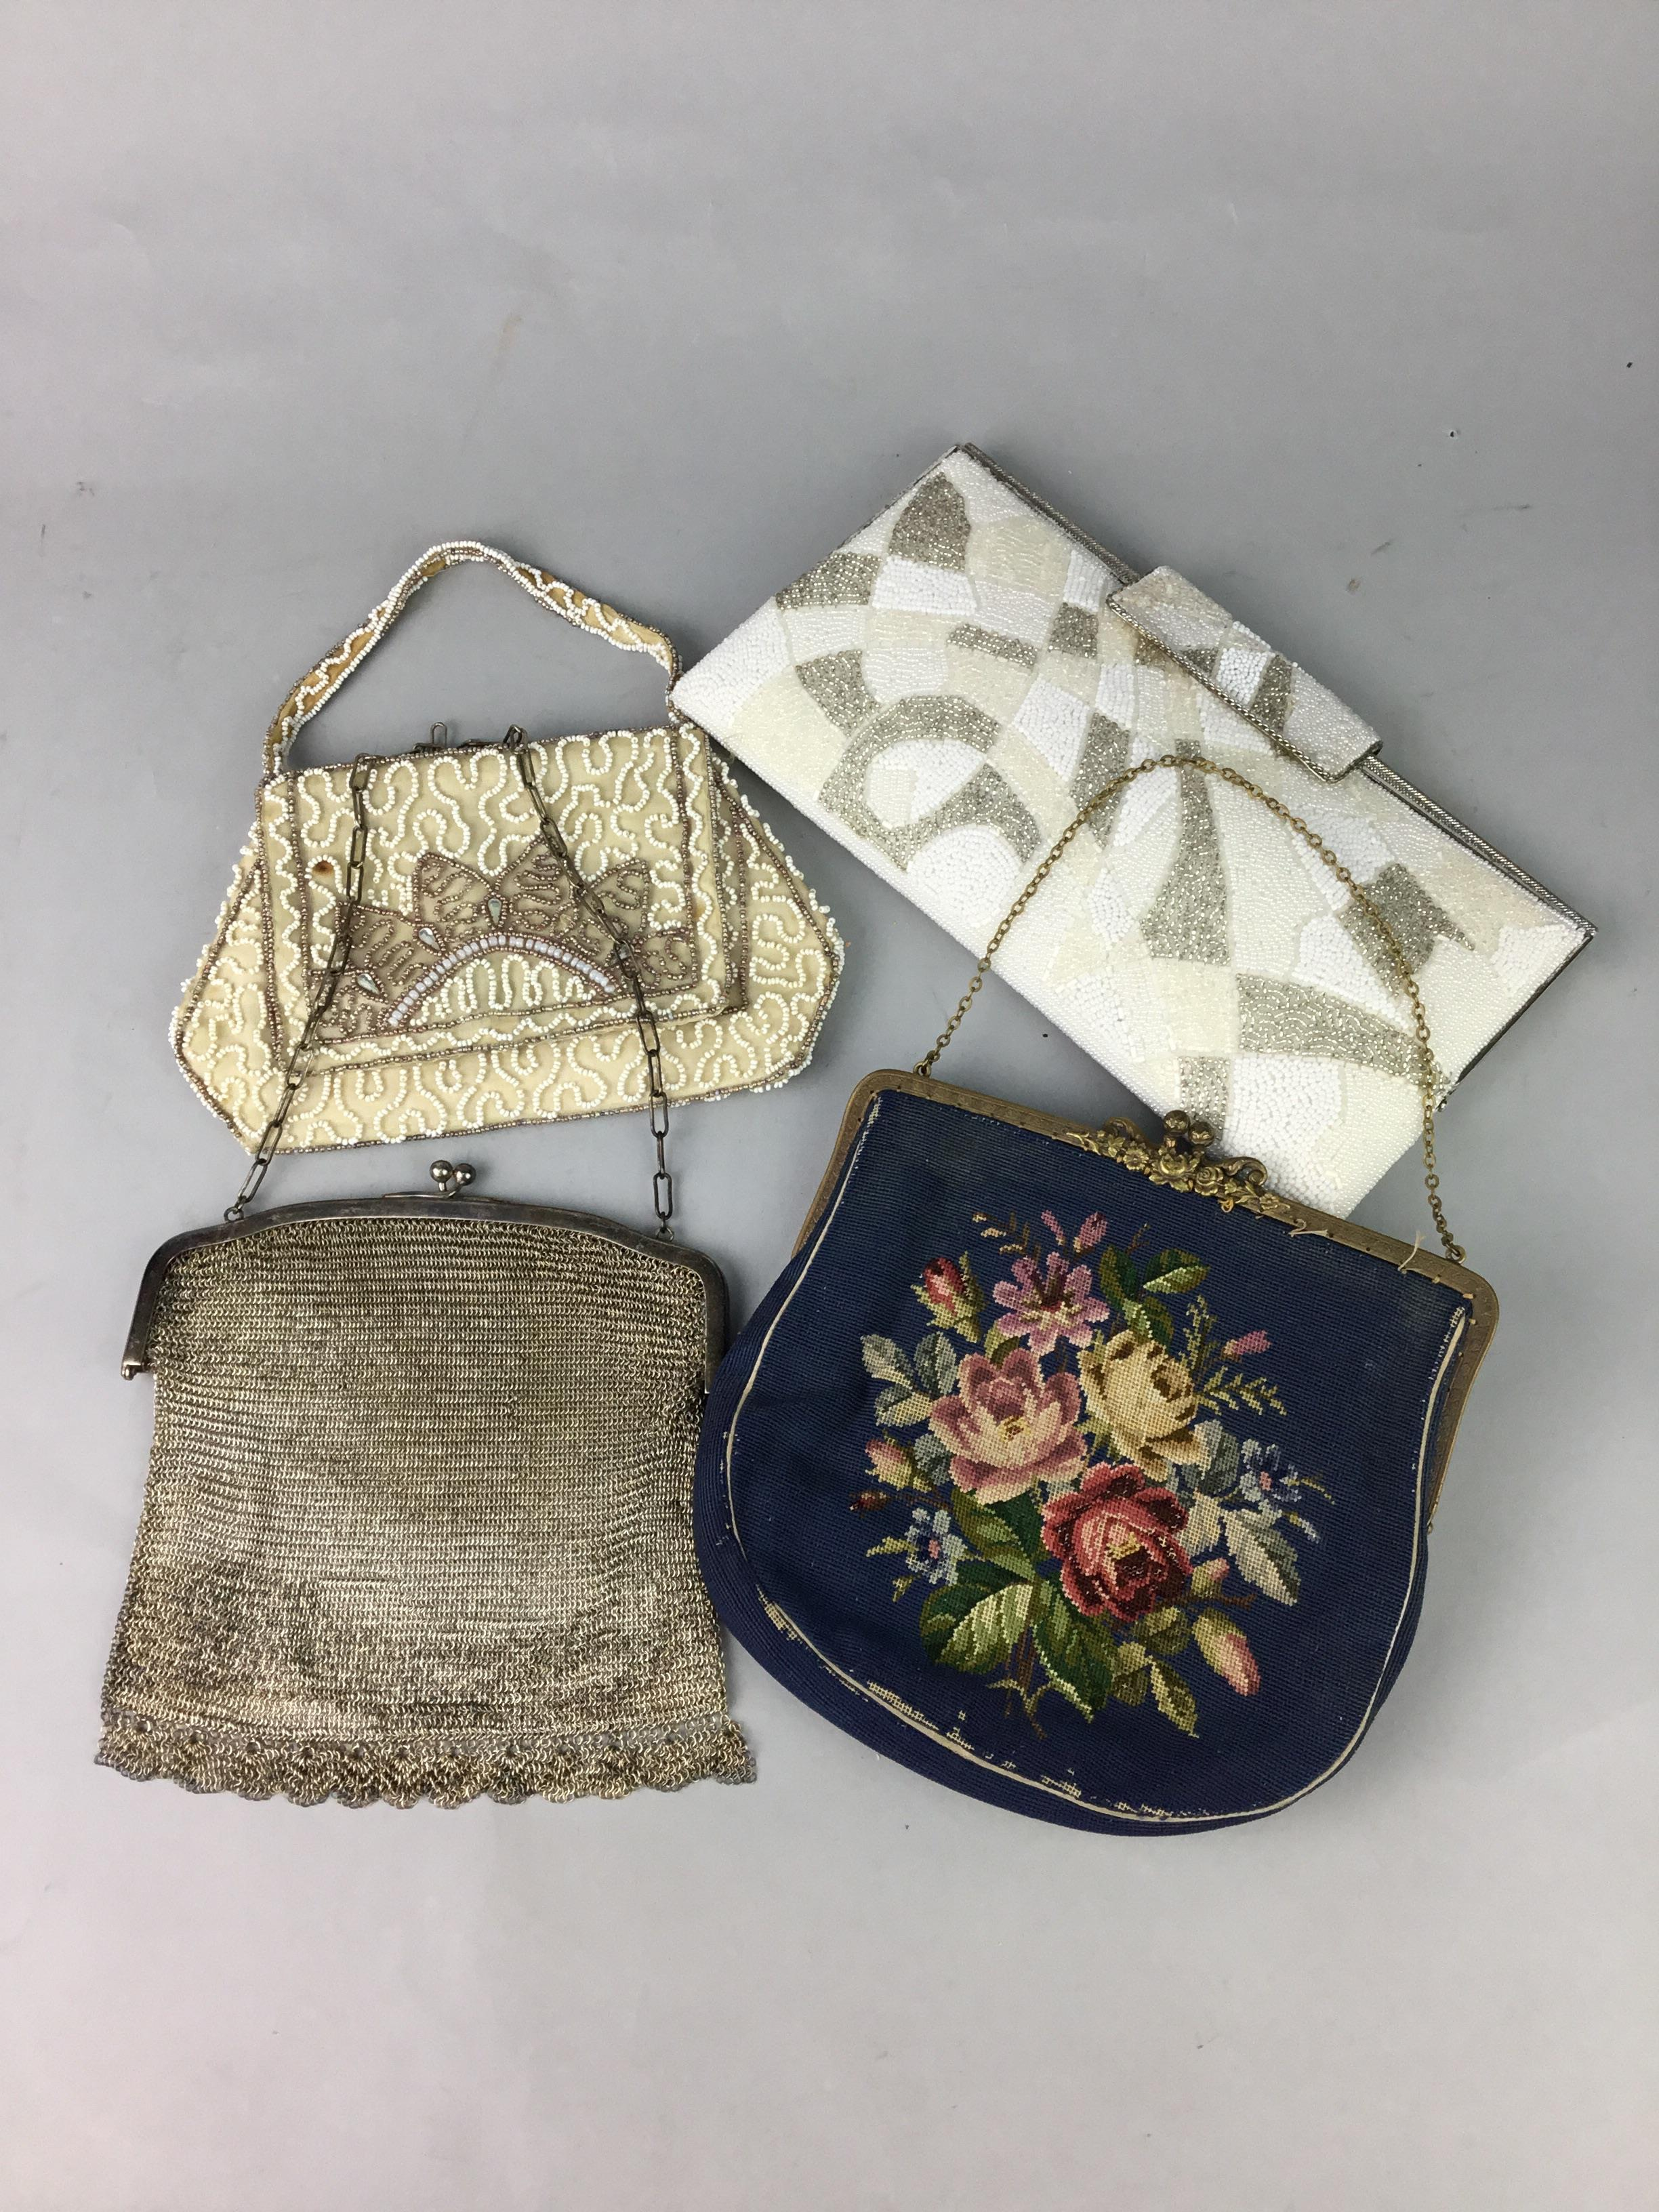 A SOUTH AMERICAN VINTAGE DESIGNER HANDBAG, OTHER BAGS AND TWO BLOUSES - Image 2 of 2